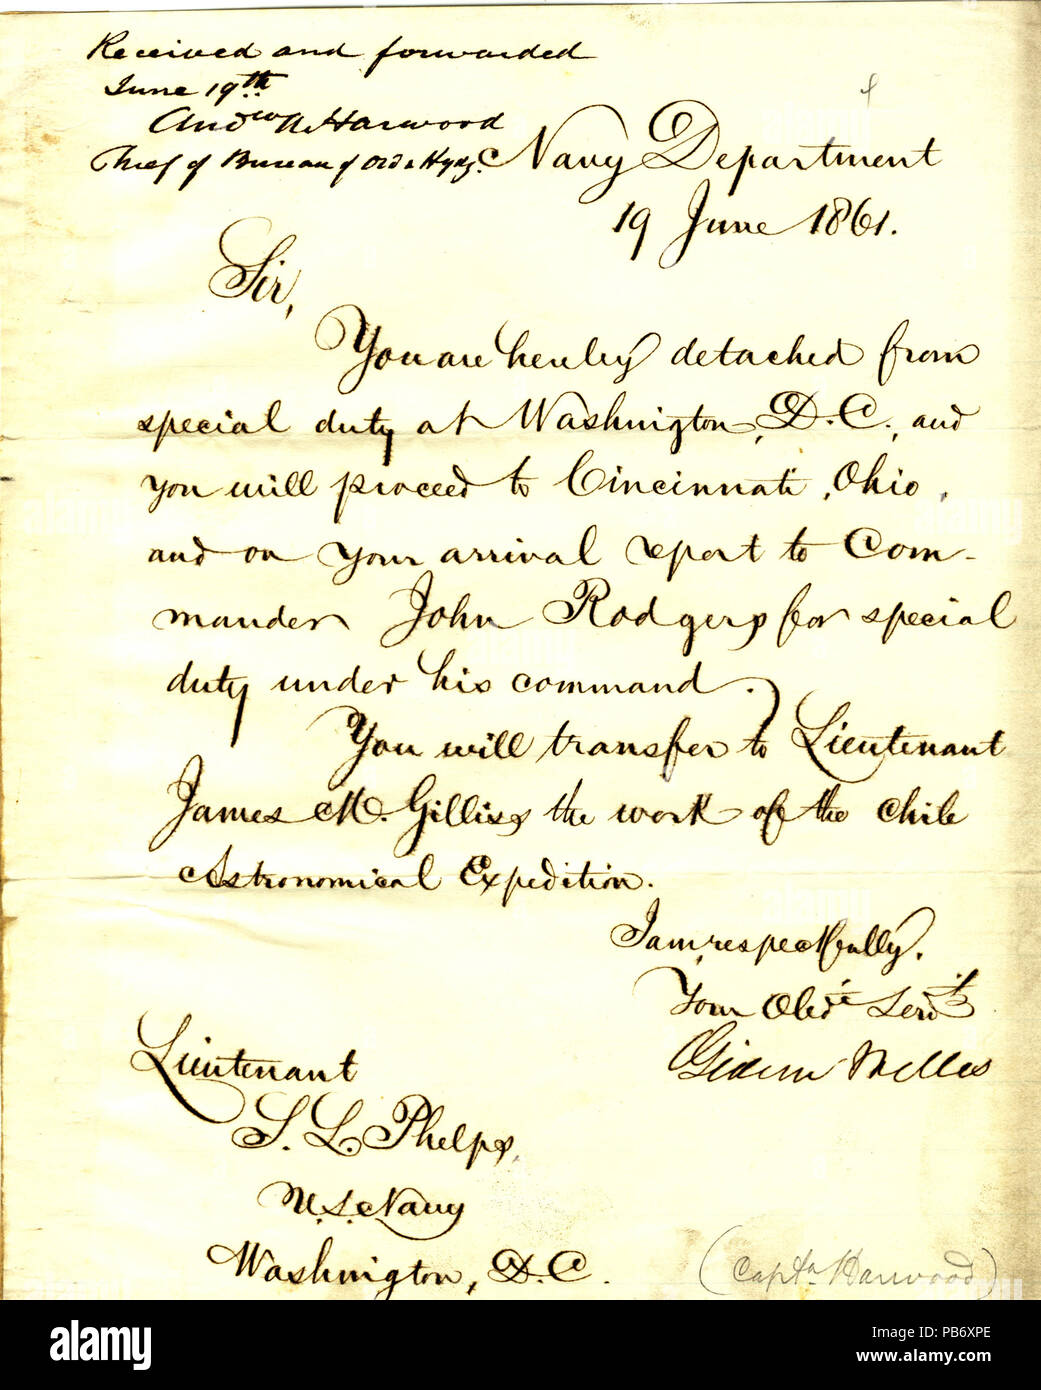 901 Letter from Gideon Welles to (Seth Ledyard) Phelps, Washington, D. C., June 19, 1861 - Stock Image